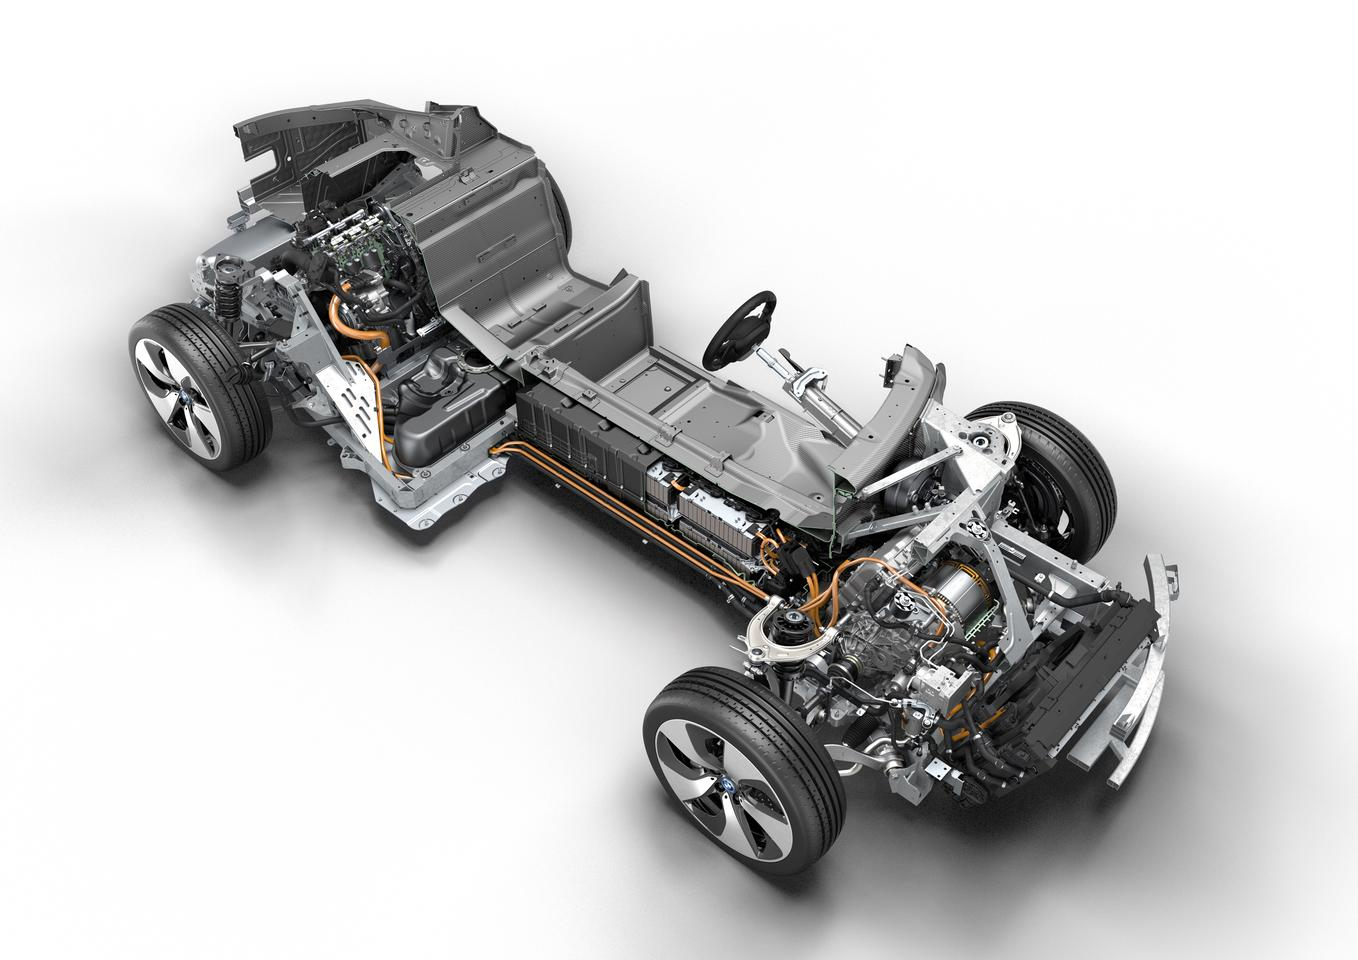 The BMW i8's hybrid powertrain - electric at the front, combustion at the rear